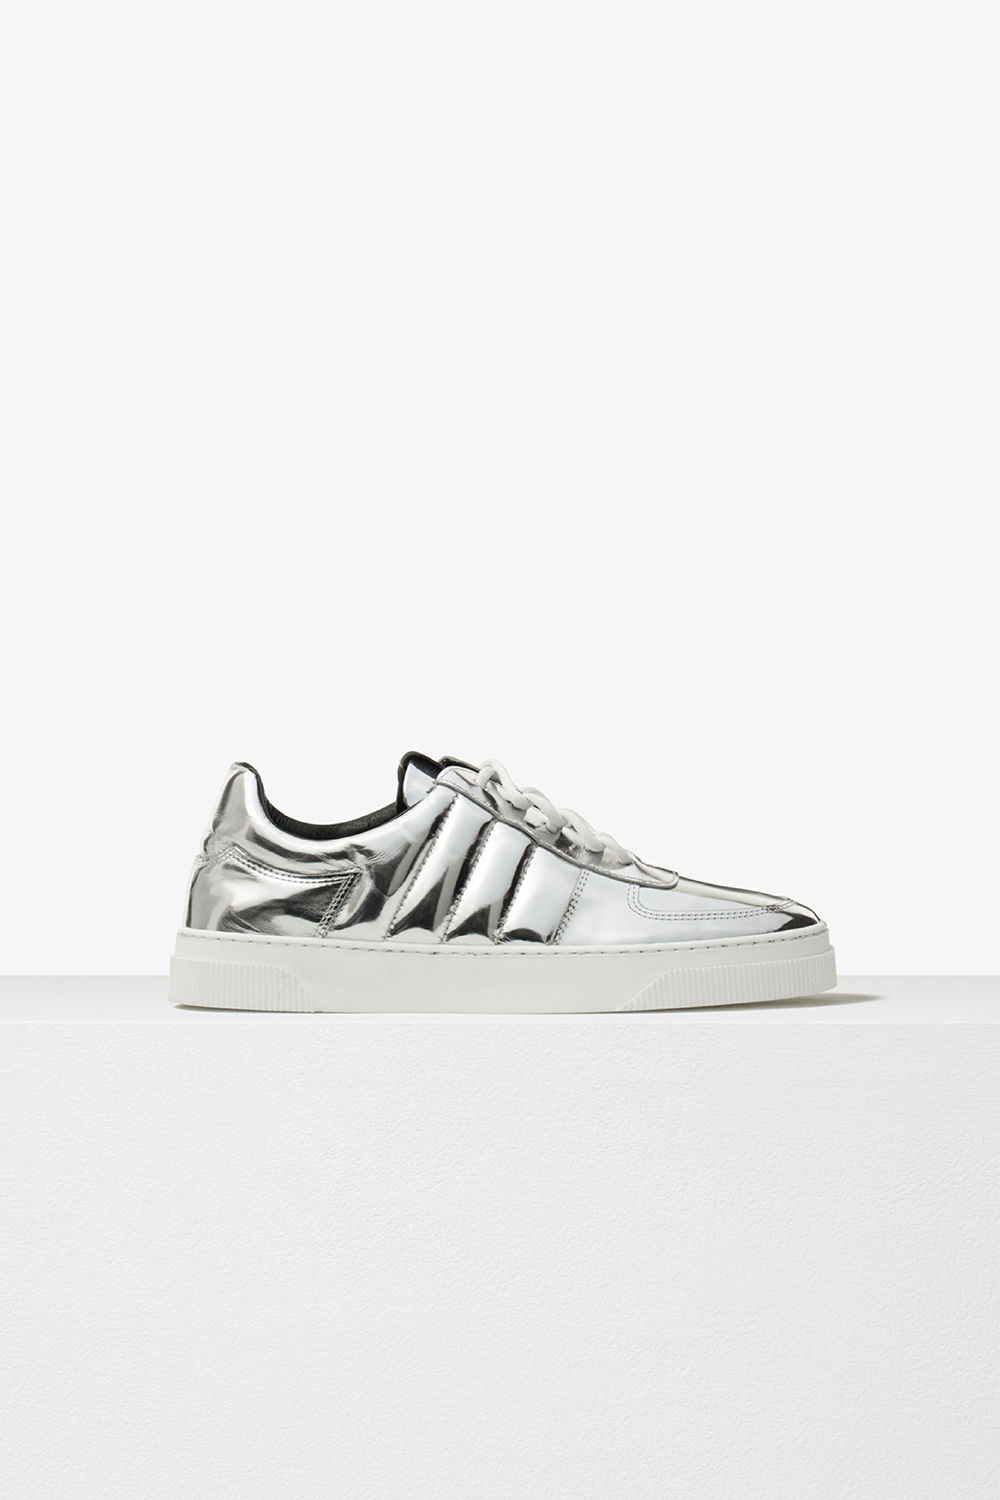 proenza schouler pre fall 2017 silver metallic leather lace up sneaker